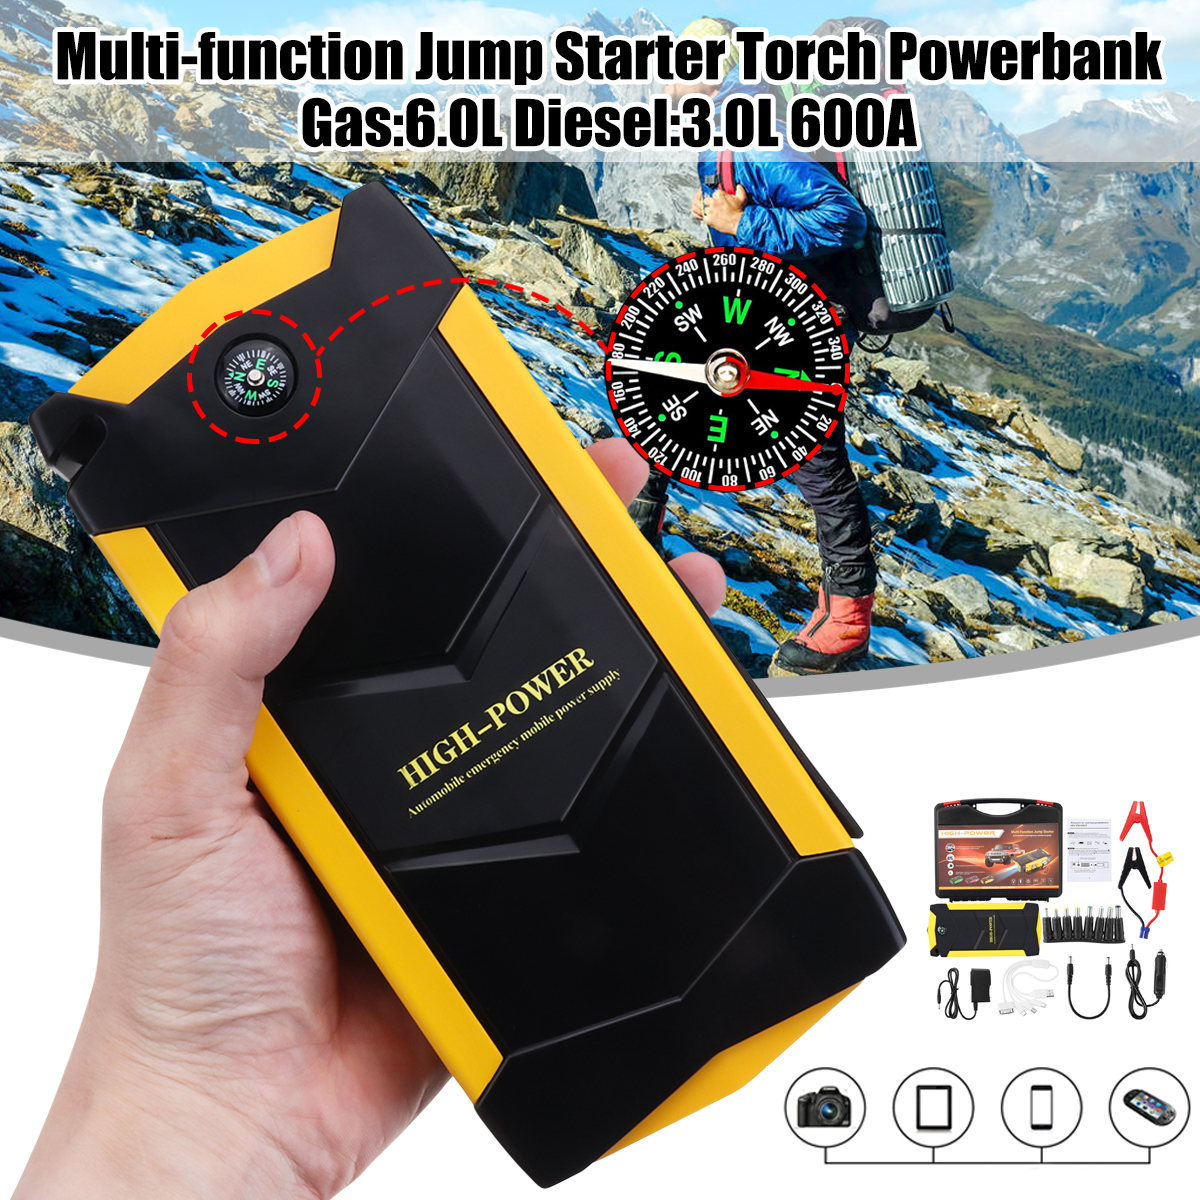 82800mAh 12V 4USB High Power Car Battery Charger Starting Car Jump Starter Booster Power Bank Tool Kit For Auto Starting Device car jump starter emergency 69800mah 12v starting device 4usb sos light mobile power bank car charger for car battery booster led